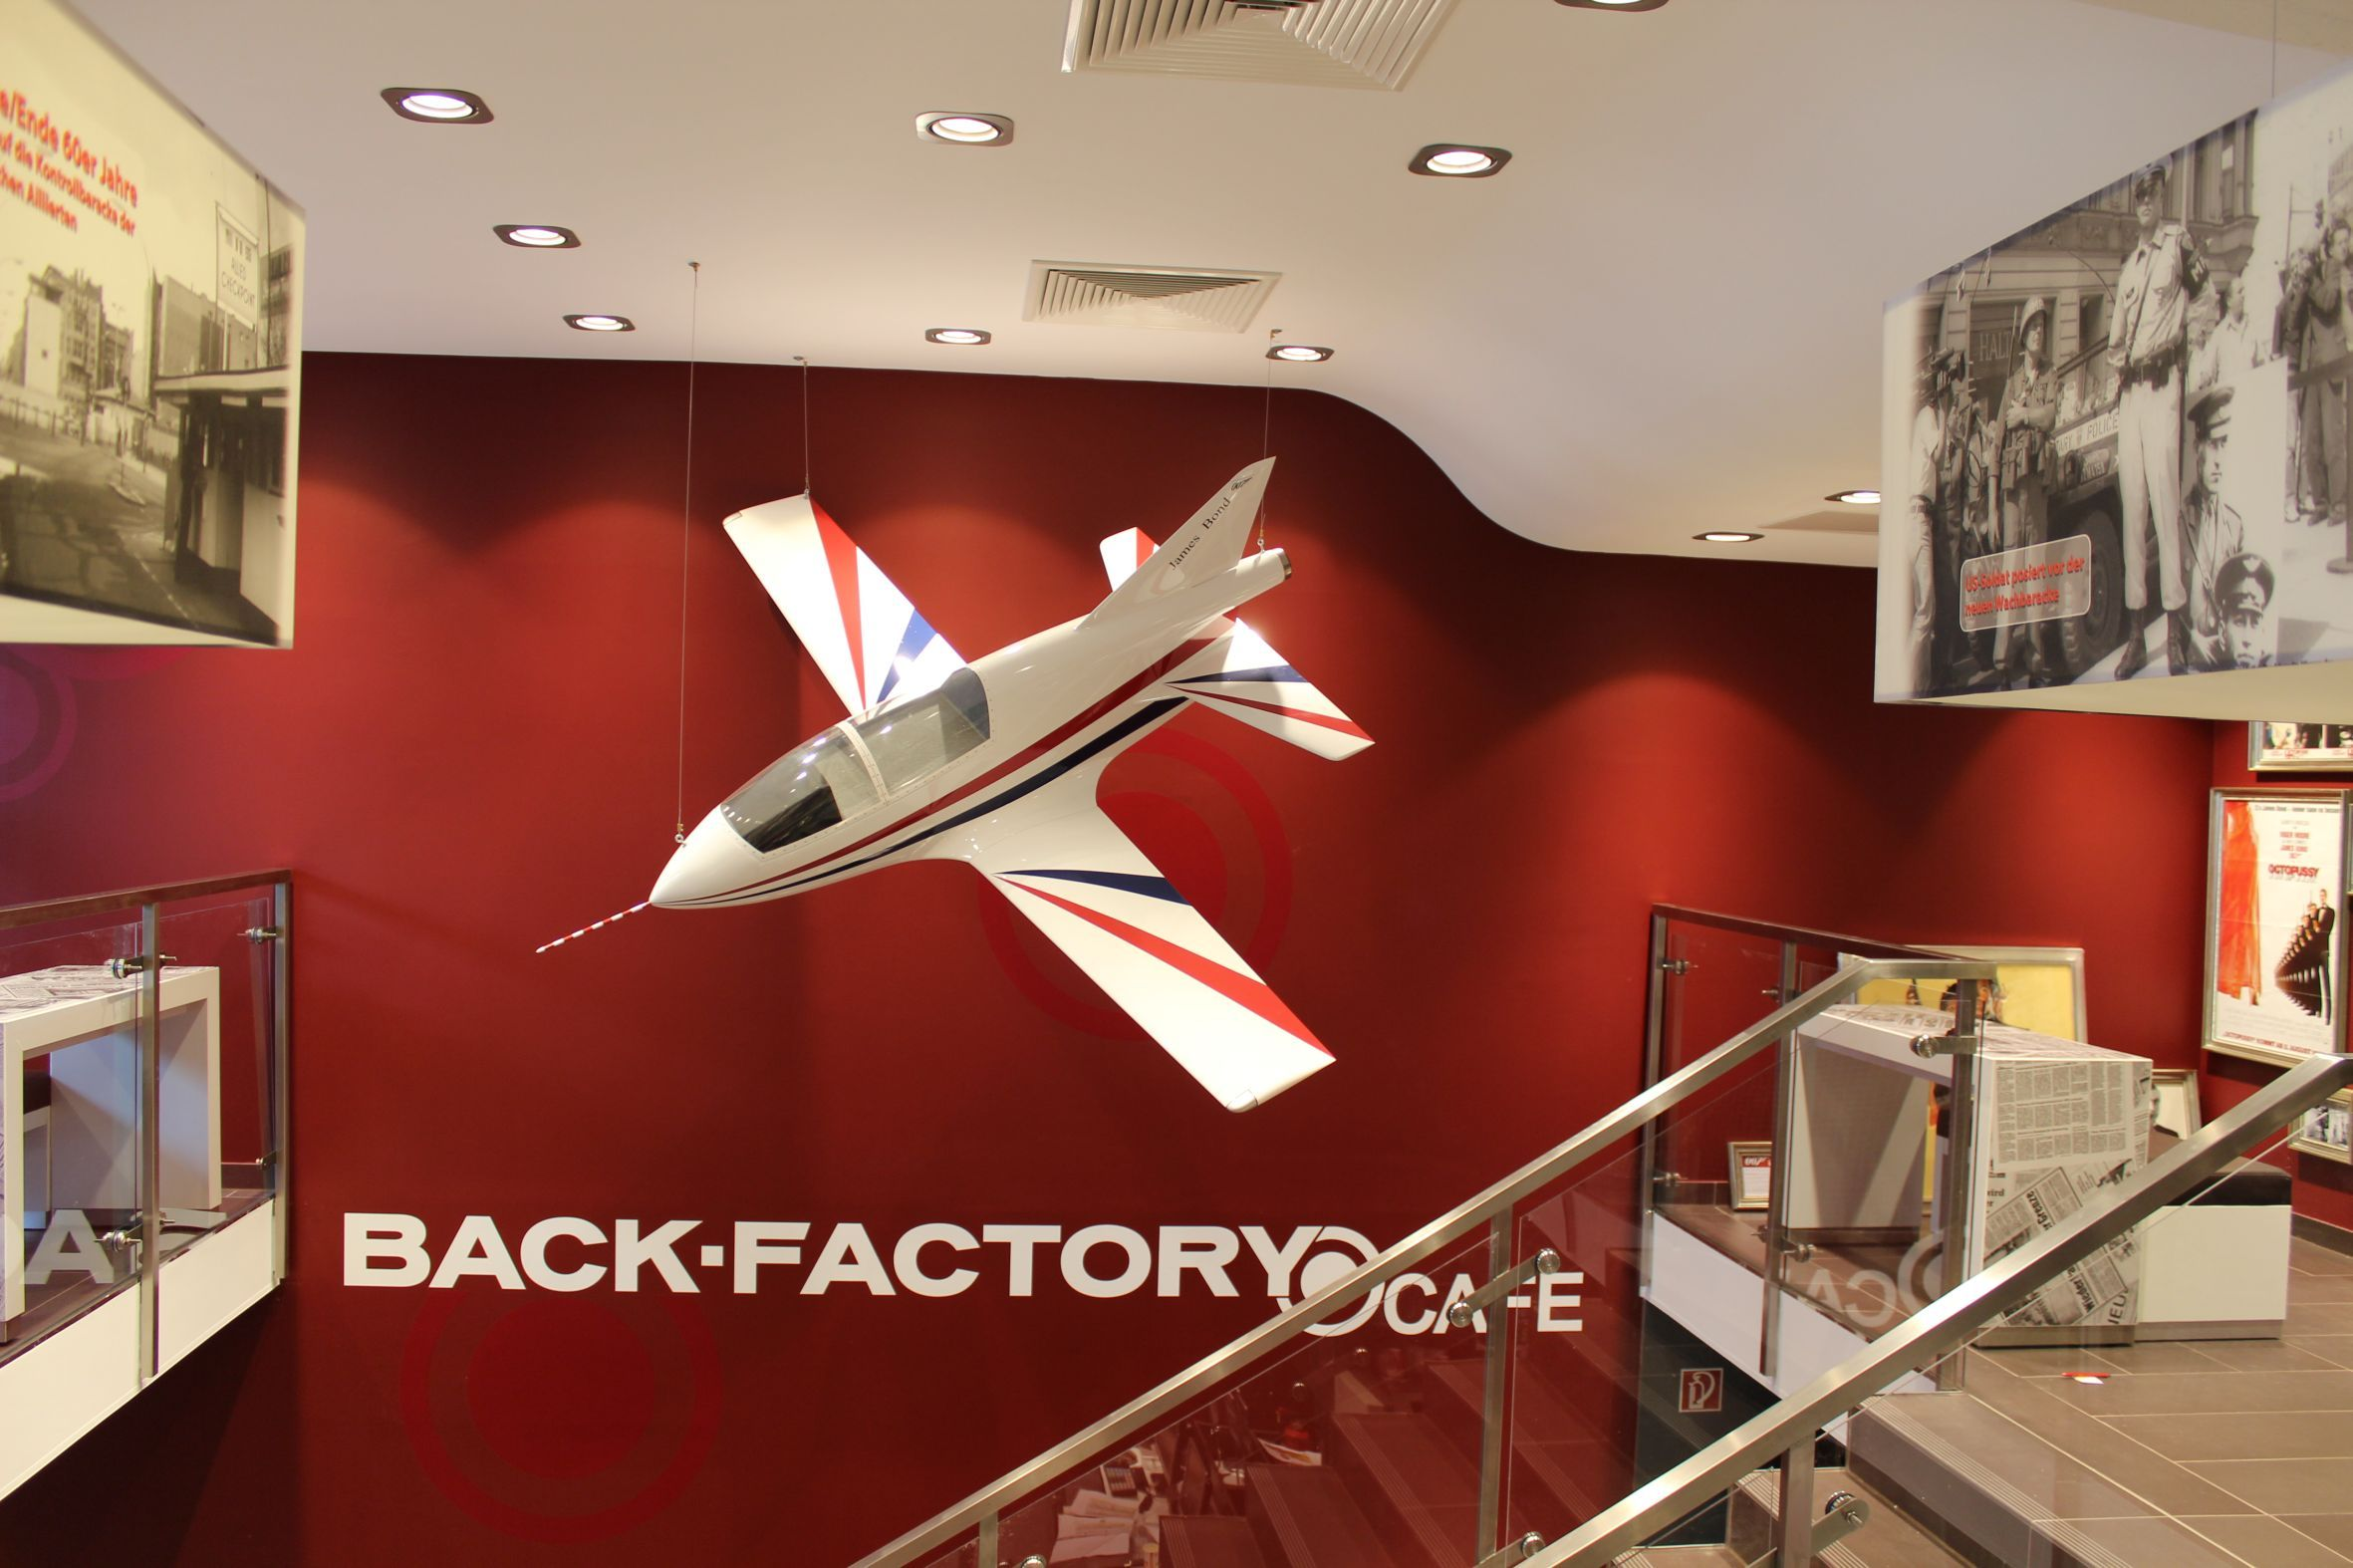 BD-5J20Back-Factory11.jpg